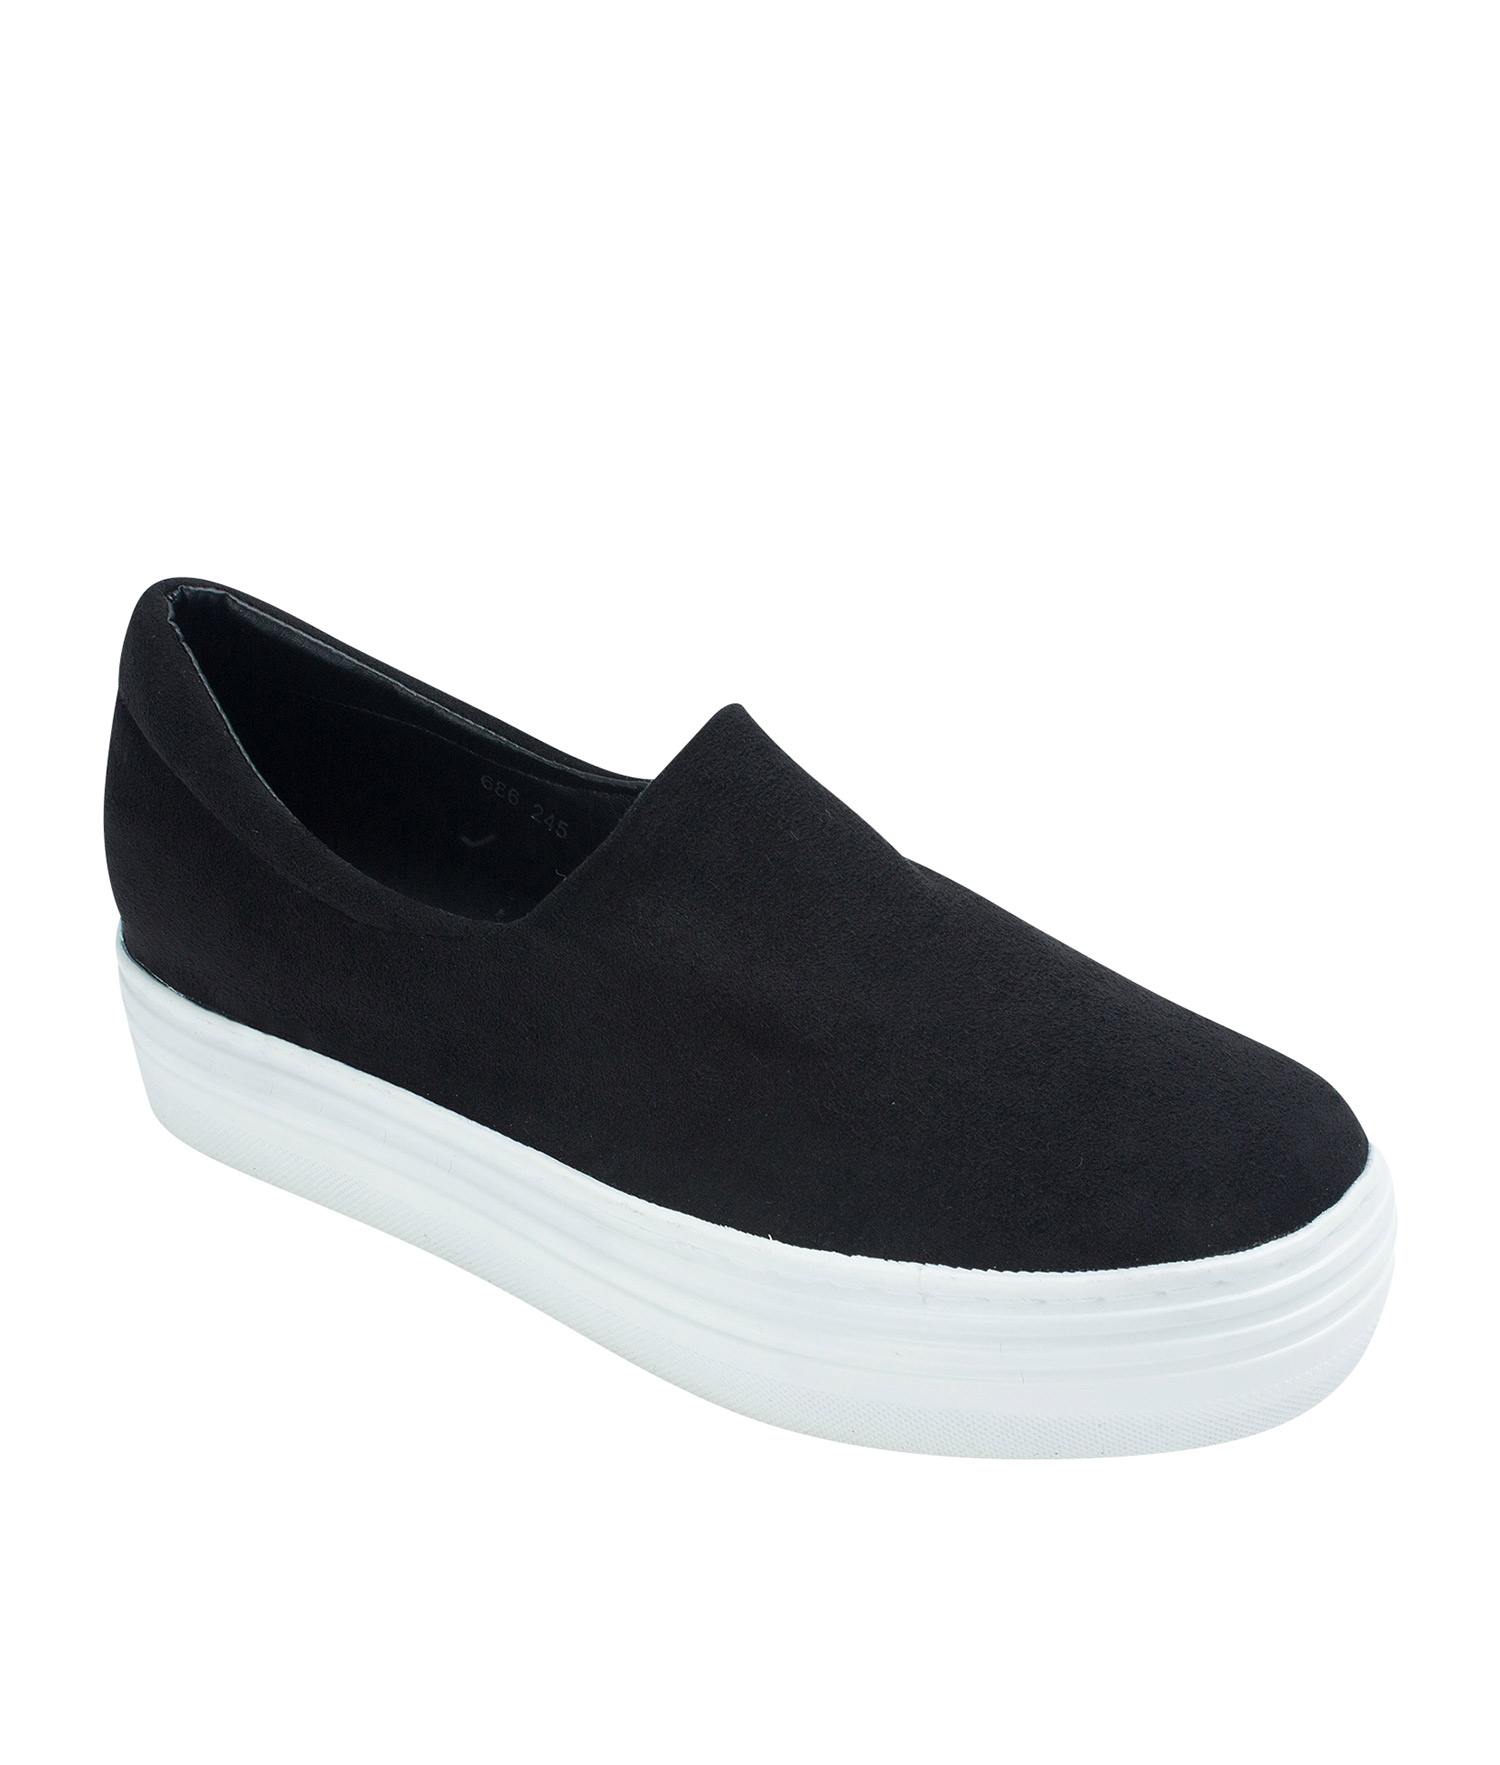 b7e7395a0 AnnaKastle Womens Faux Suede Stretch Slip-On Platform Sneakers Black